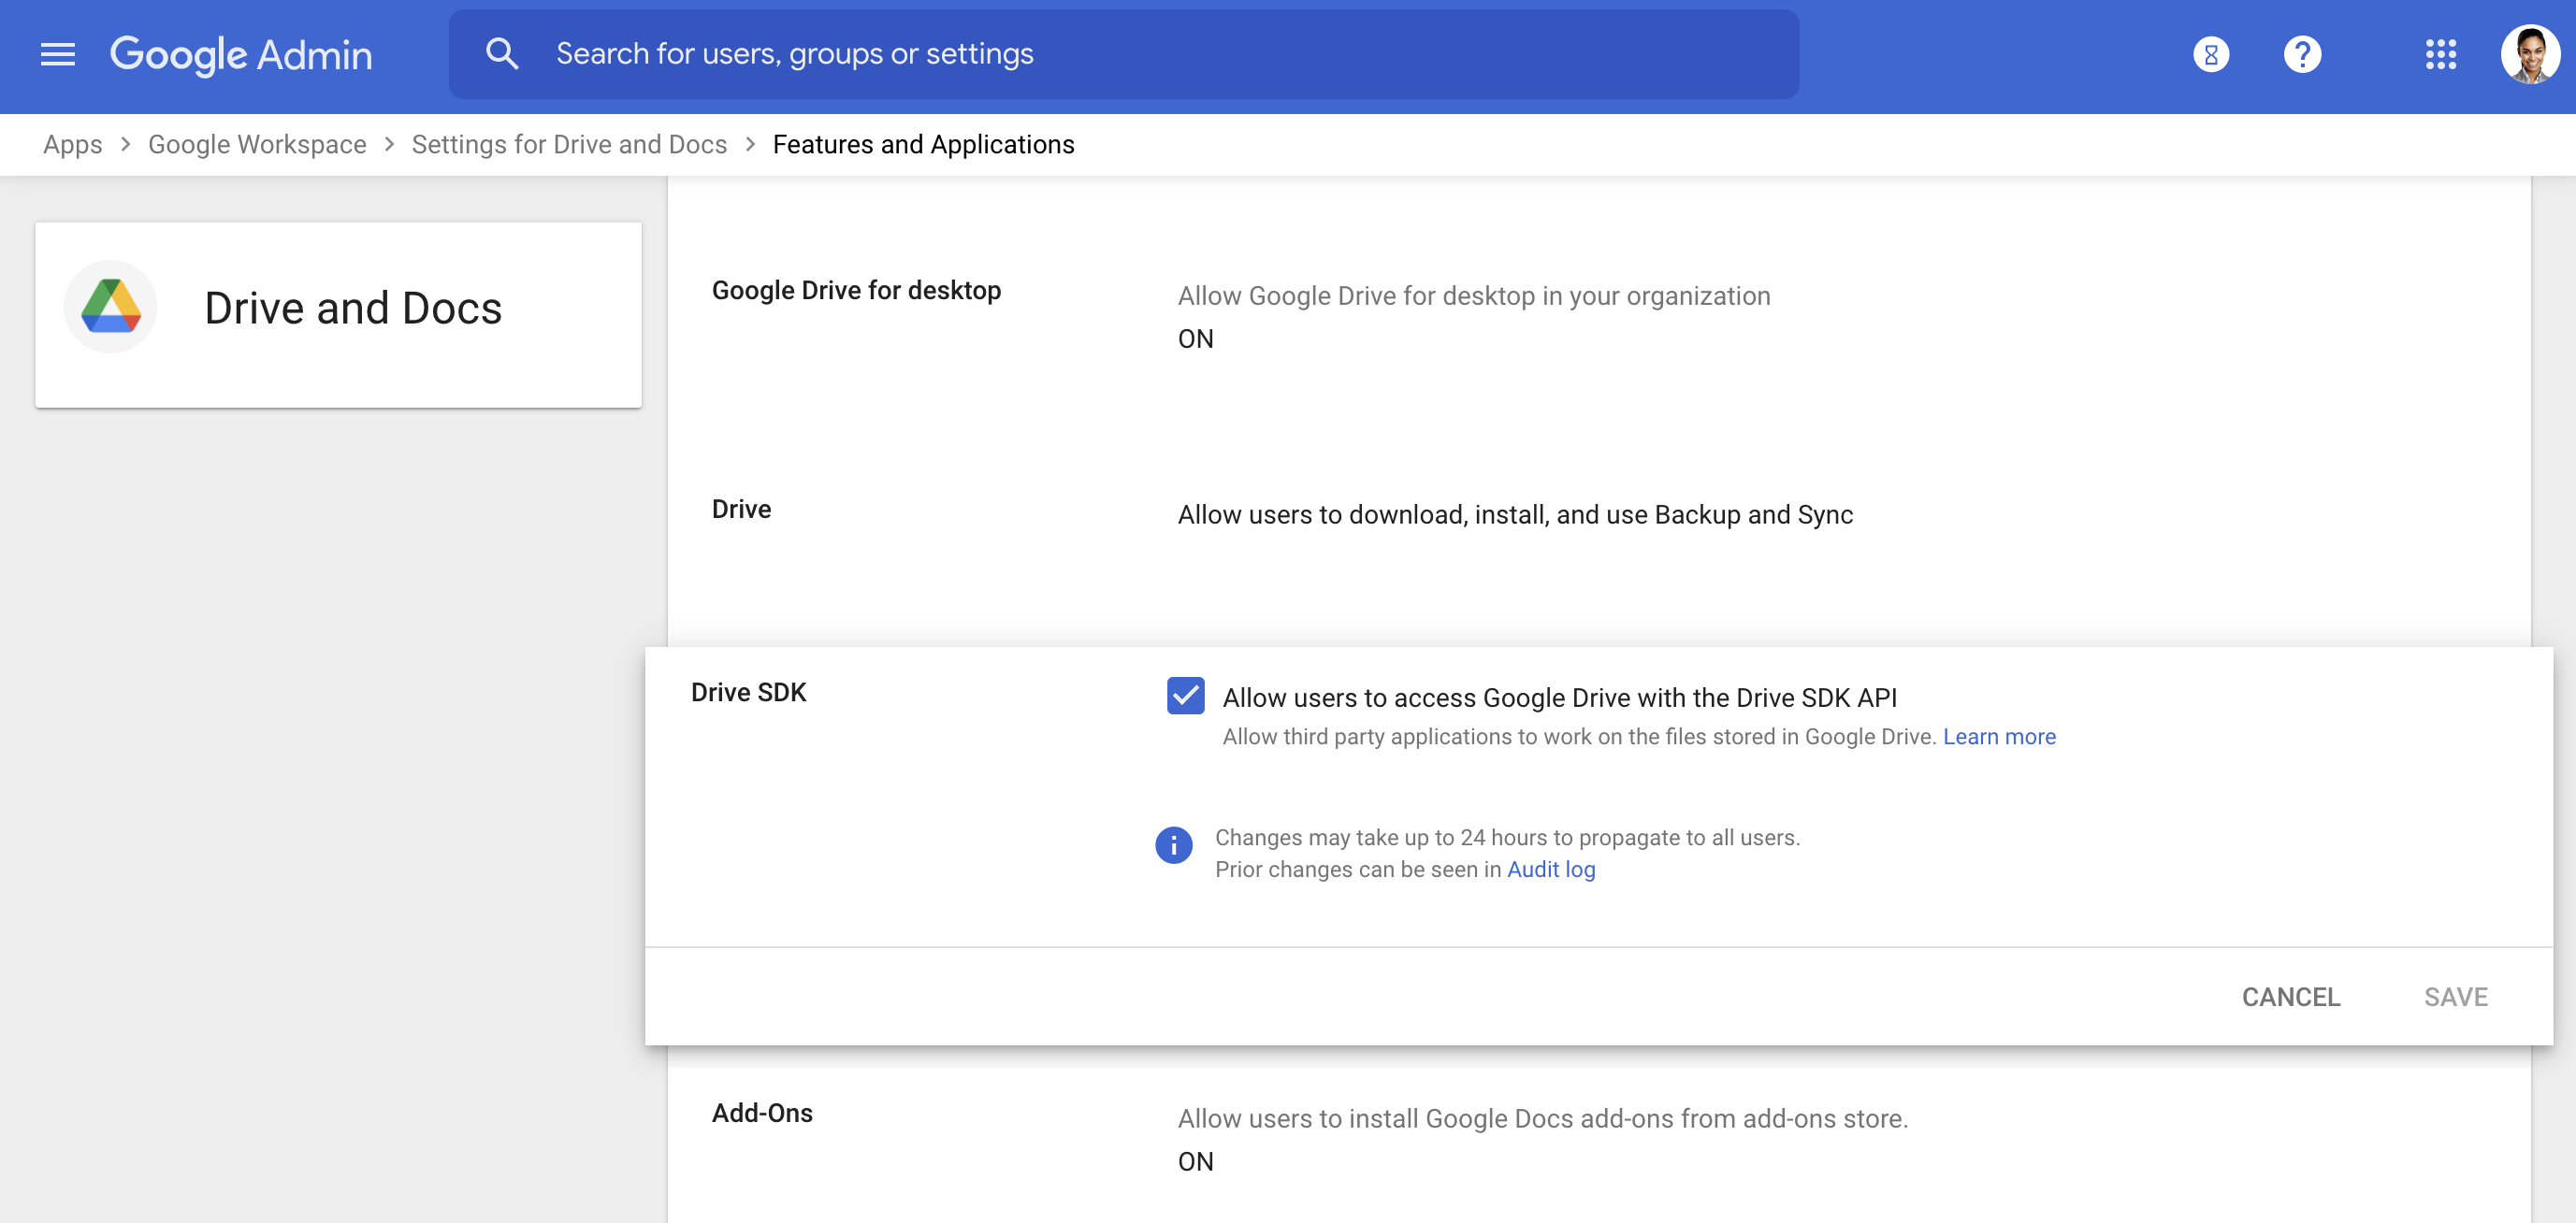 Check the box to allow users to access Google Drive with the Drive SDK API